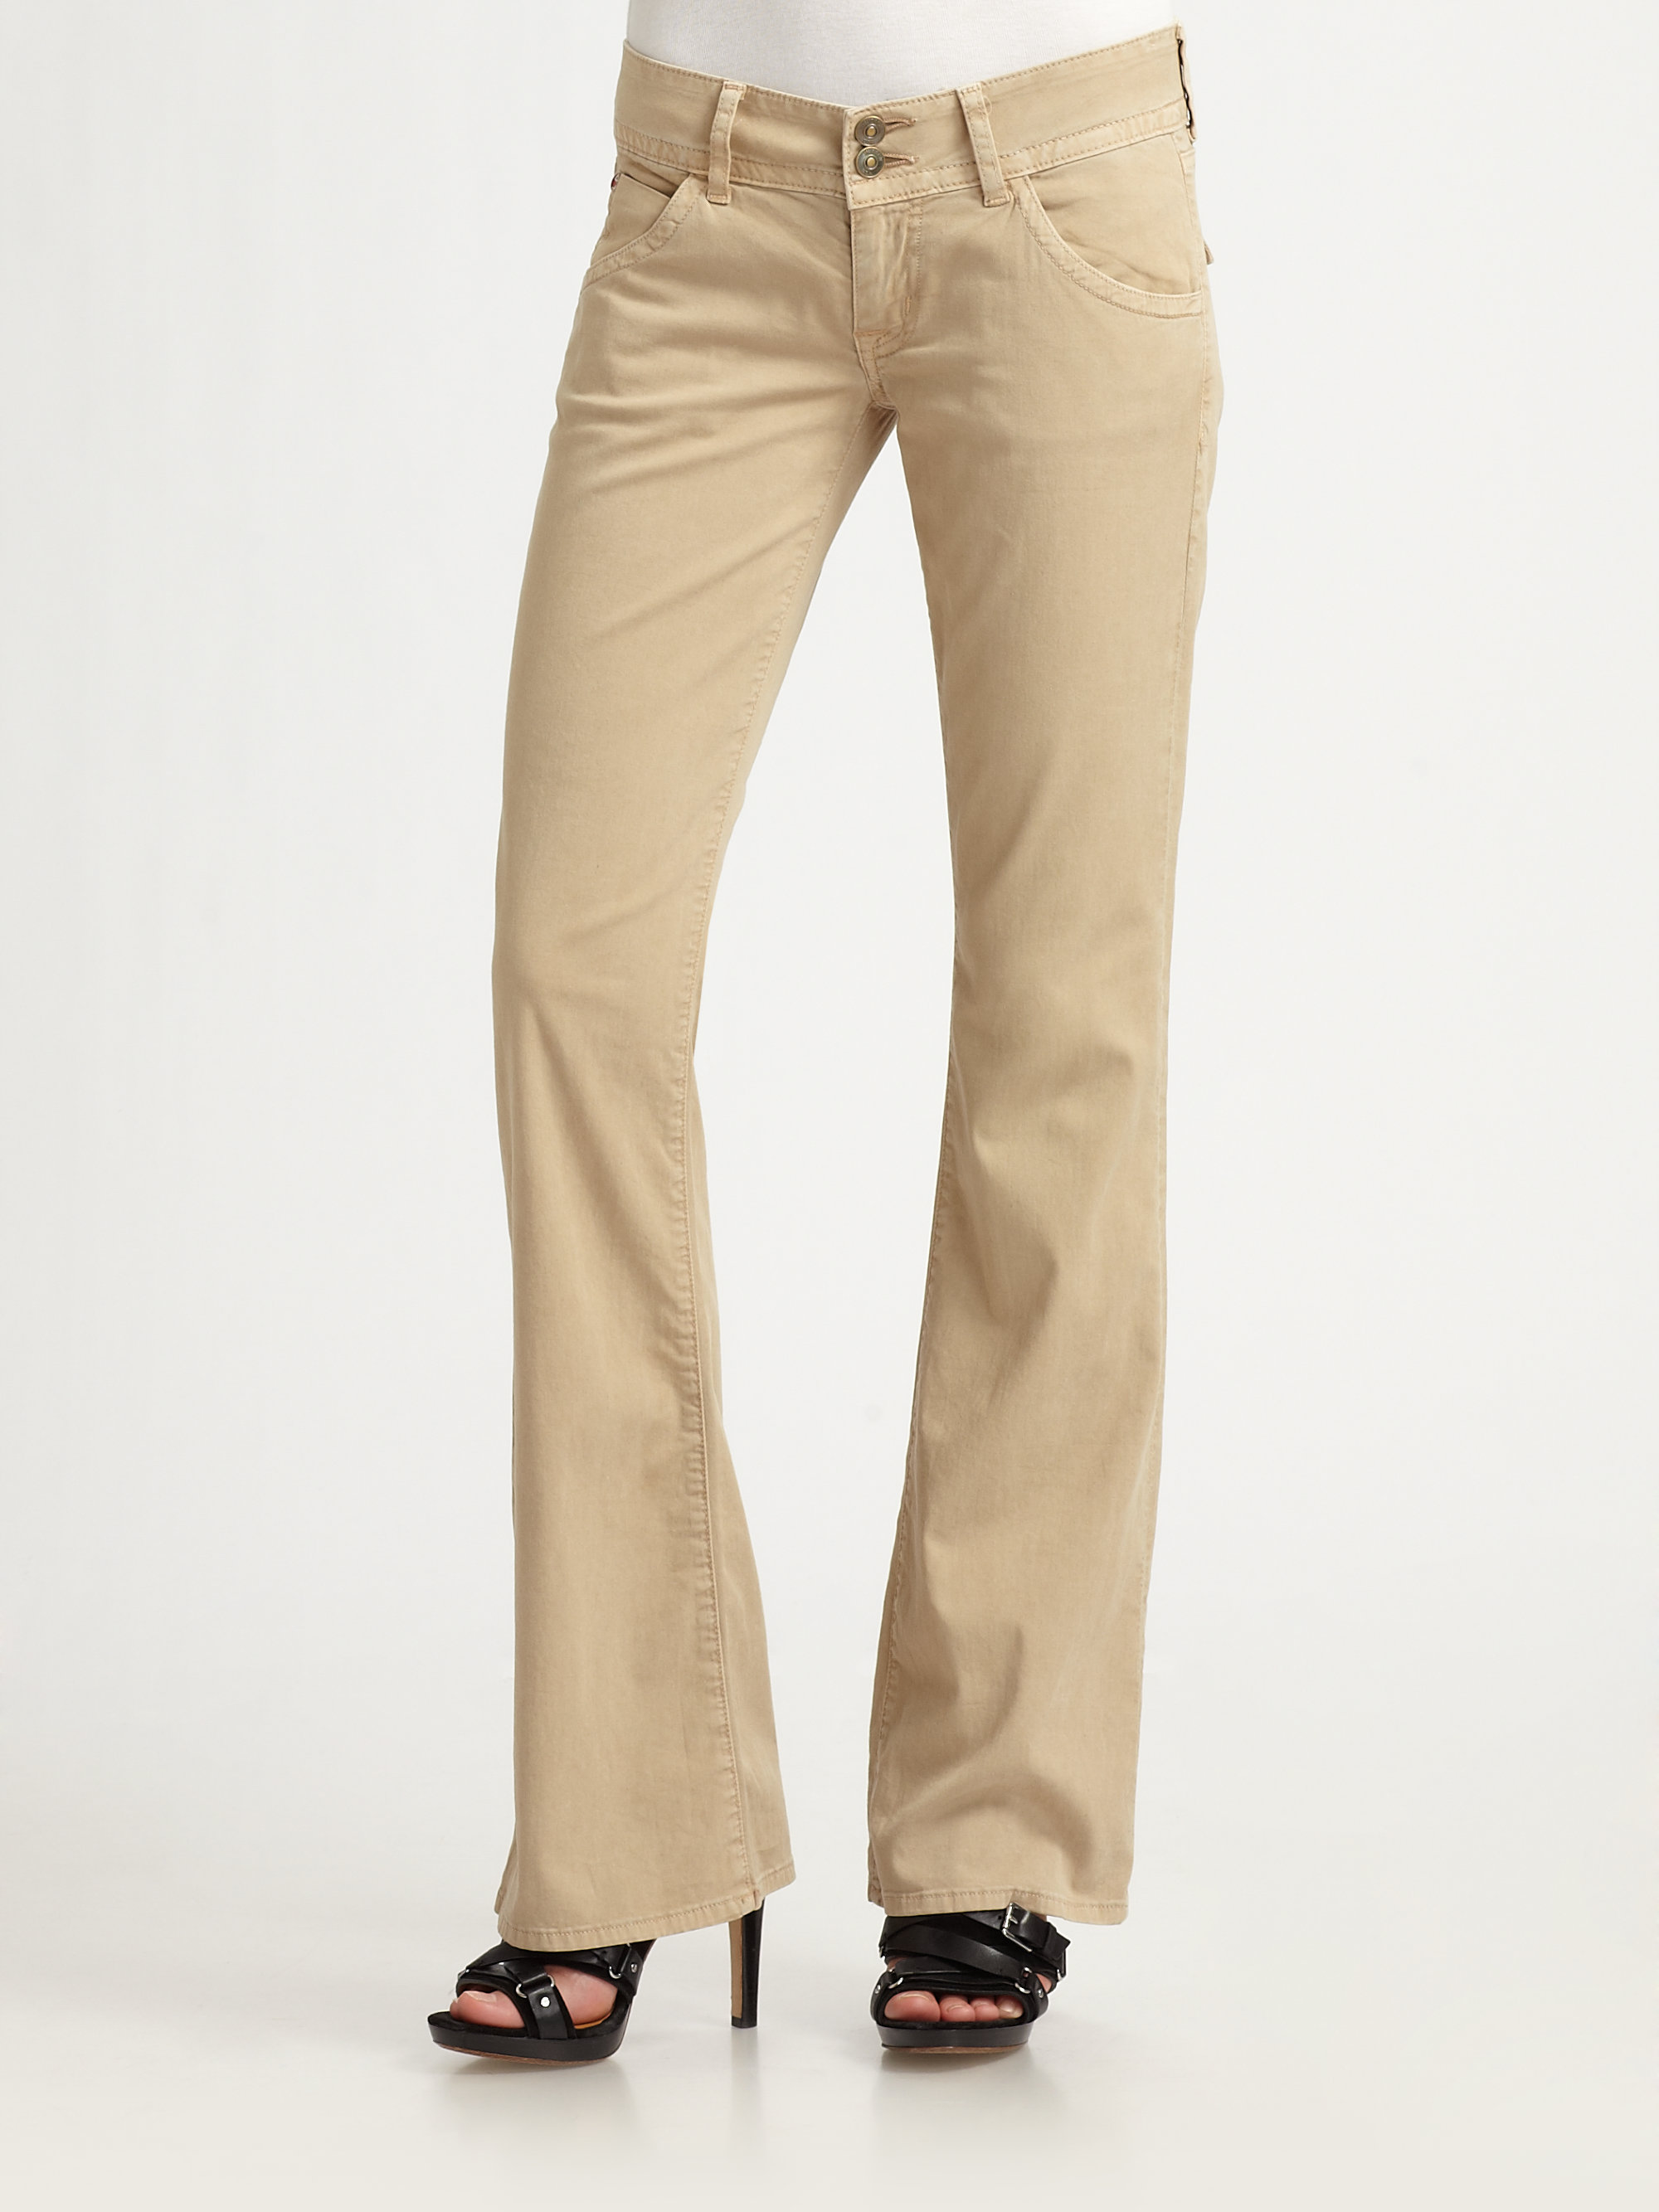 Hudson Jeans Signature Bootcut In Natural Lyst